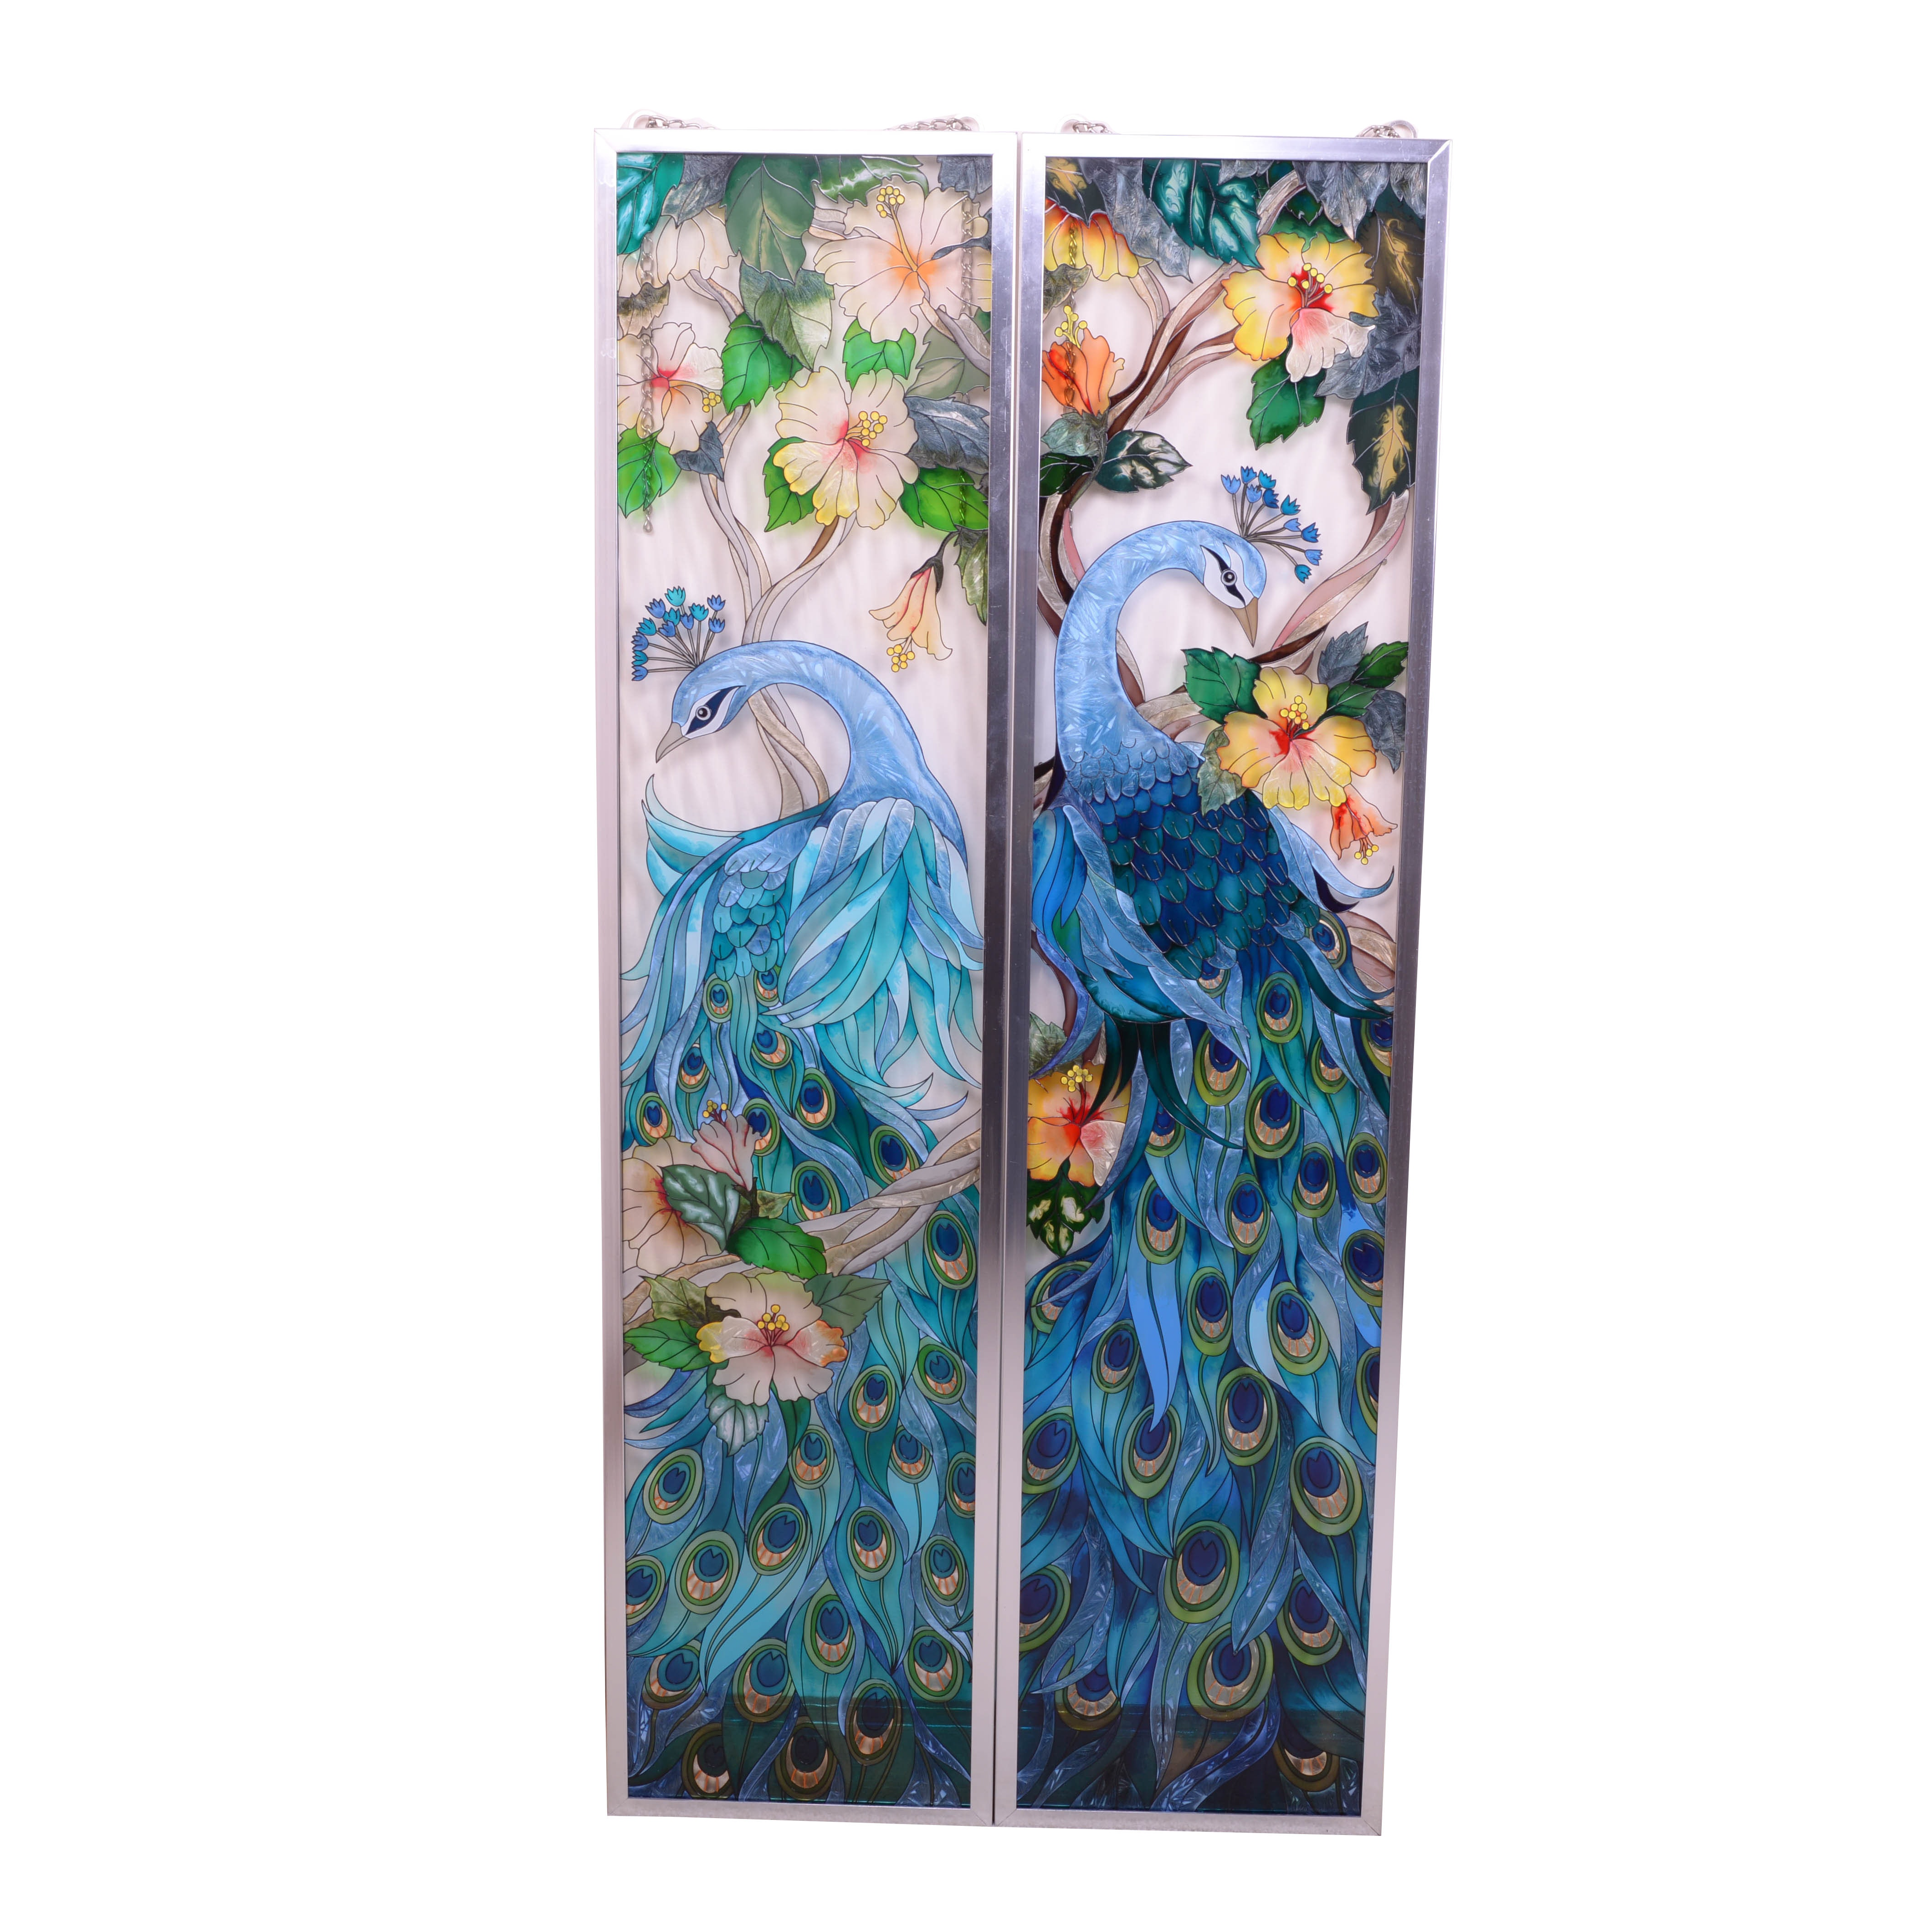 Decorative Peacock Adorned Painted Glass Panels